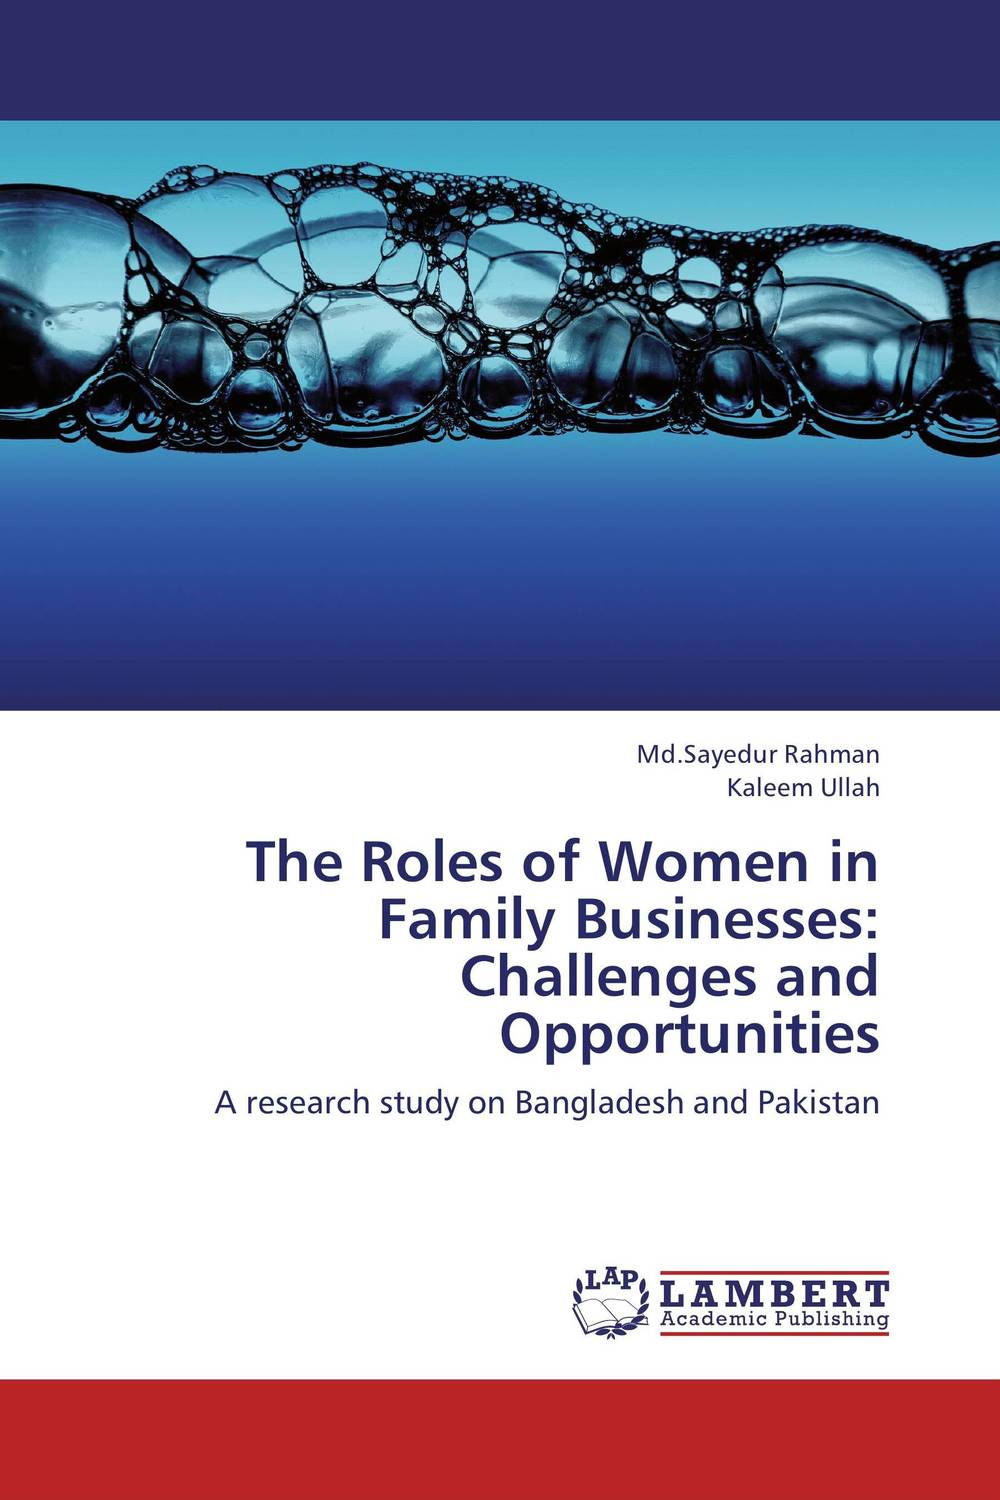 The Roles of Women in Family Businesses: Challenges and Opportunities family caregiving in the new normal